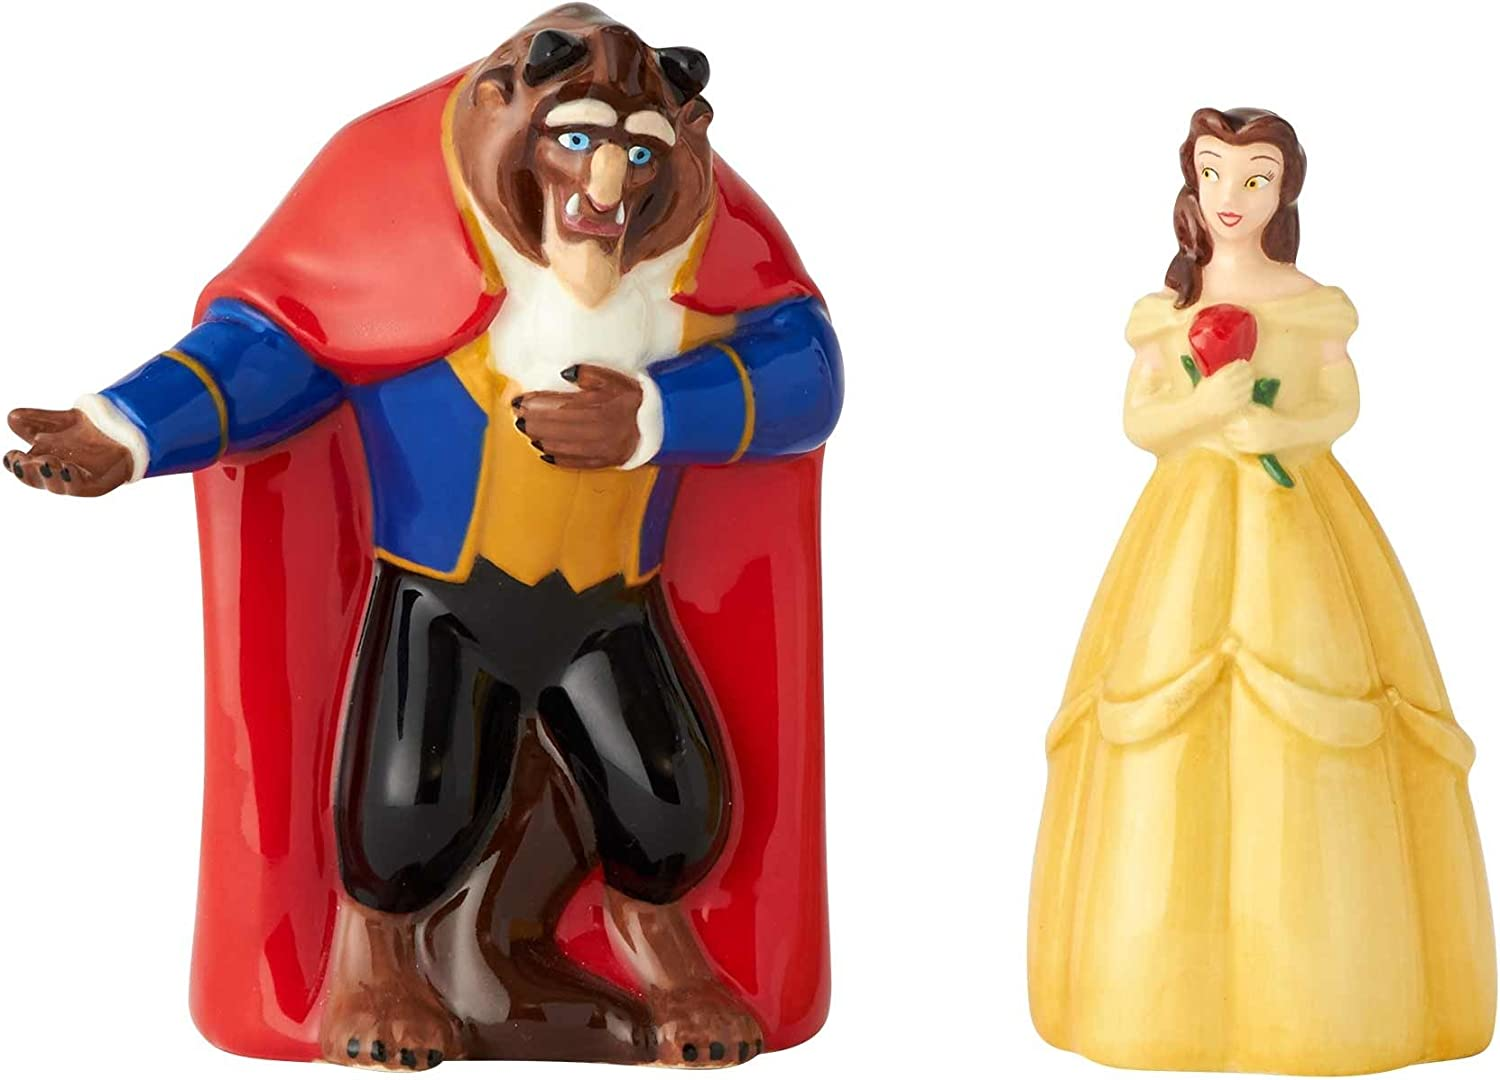 "Enesco Disney Ceramics""美女と野獣"" Belle Salt and Pepper Shakers、3.5インチ、マルチカラー"